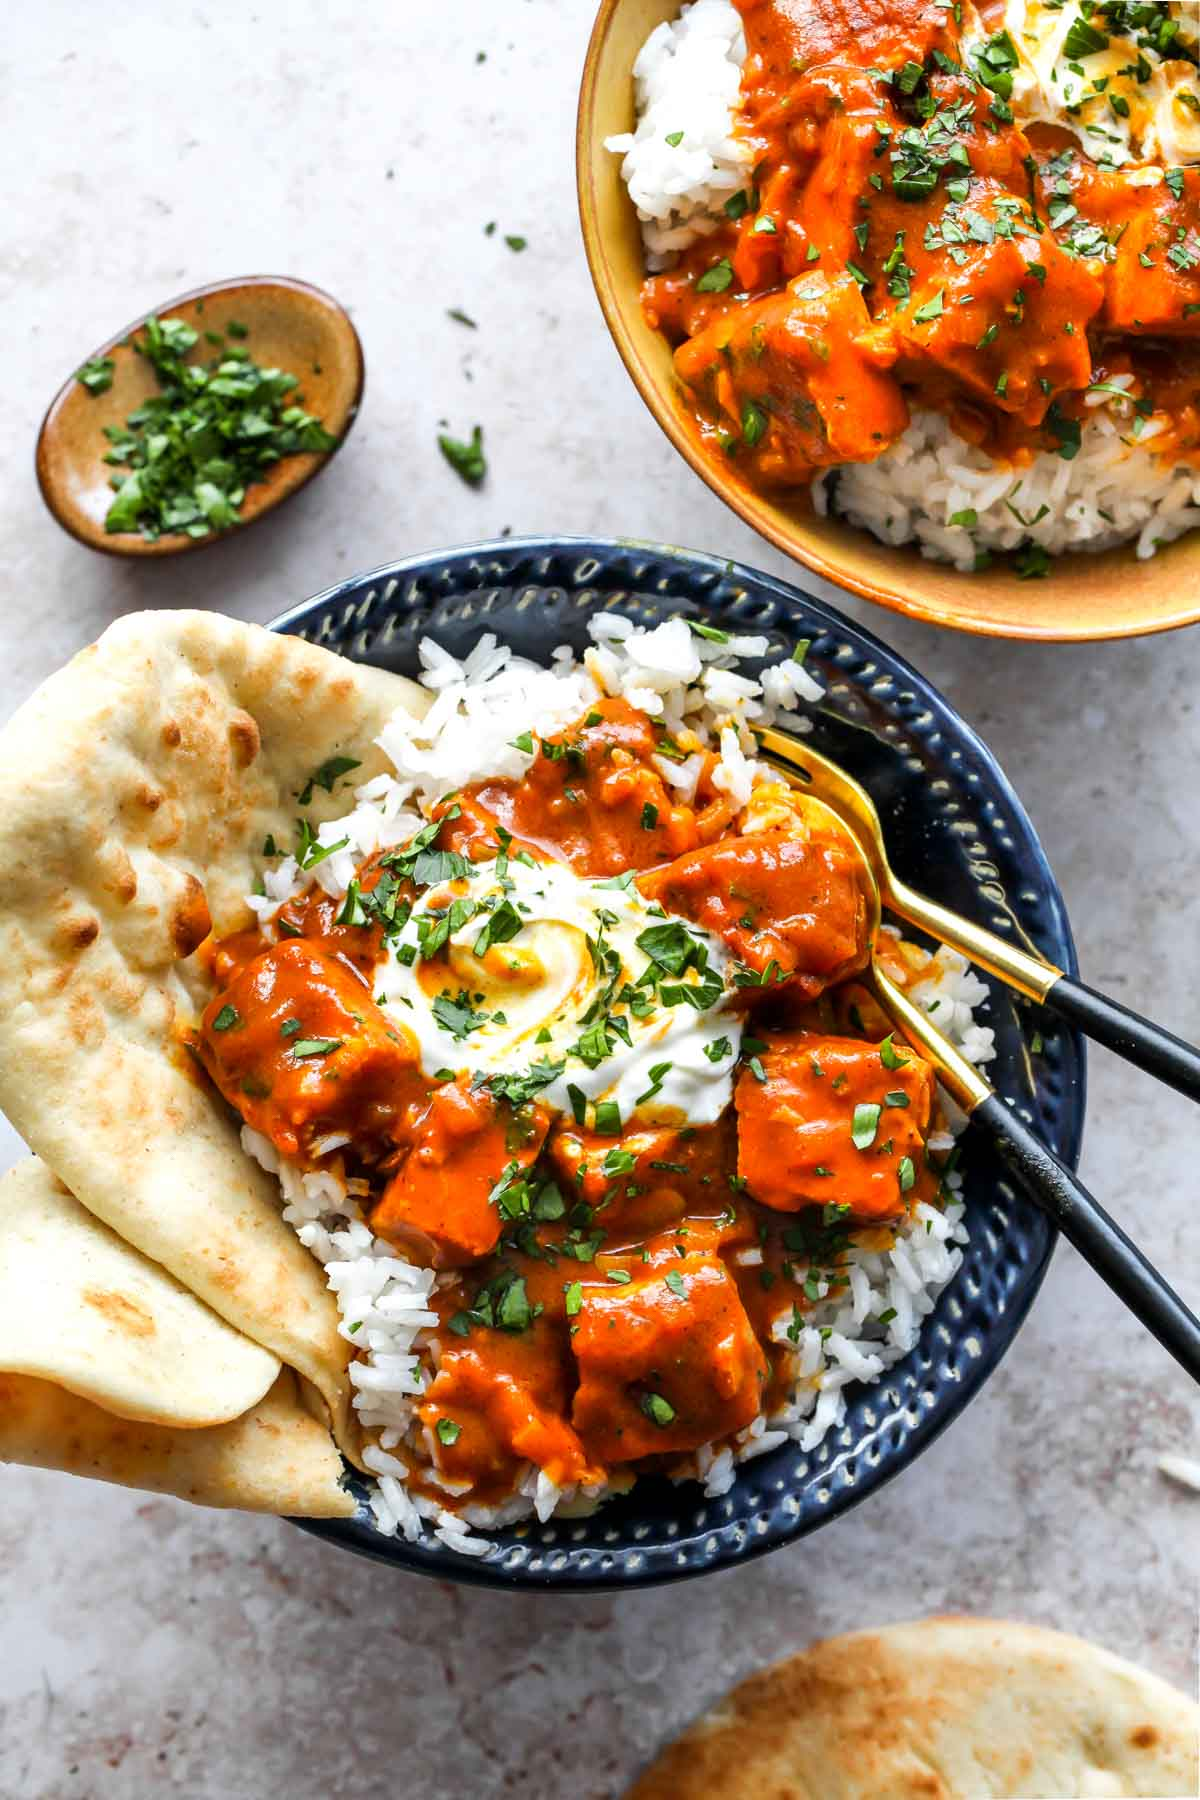 Two bowls of vegan tikka masala topped with yogurt, herbs, and naan bread